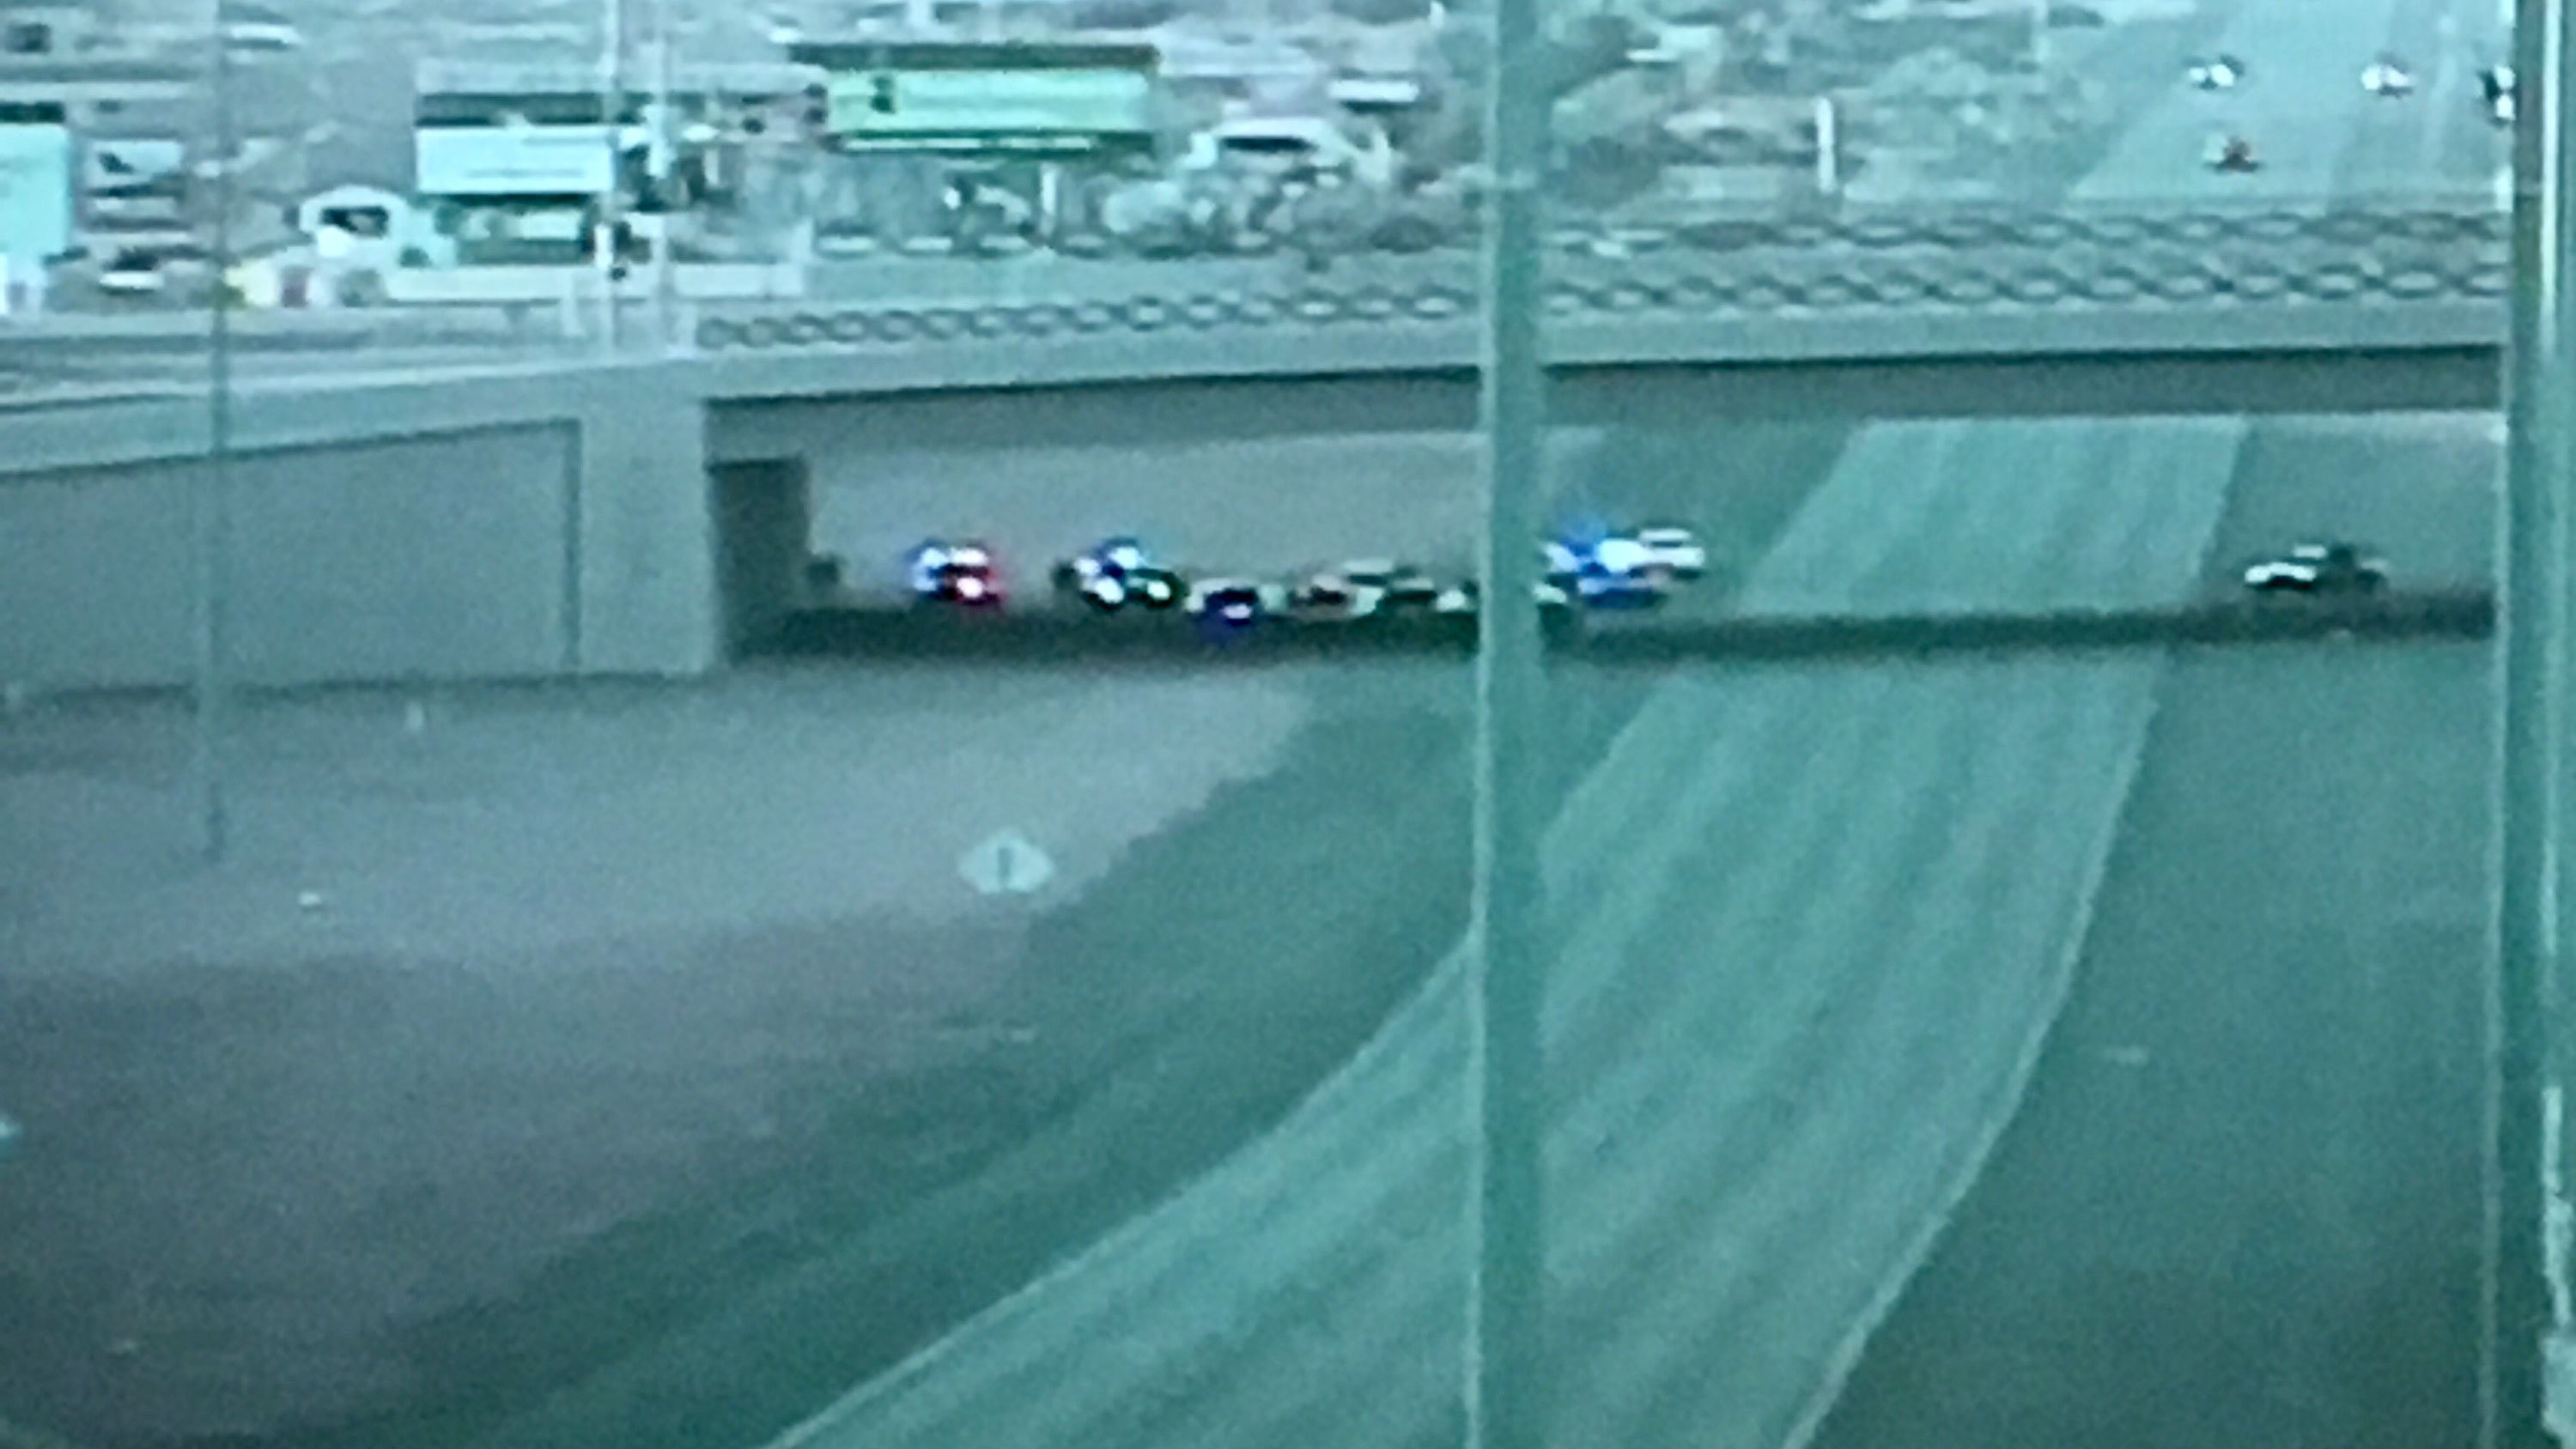 A male with felony warrantswas barricaded on Interstate 15 near St. Rose Parkway, shutting down the freeway.